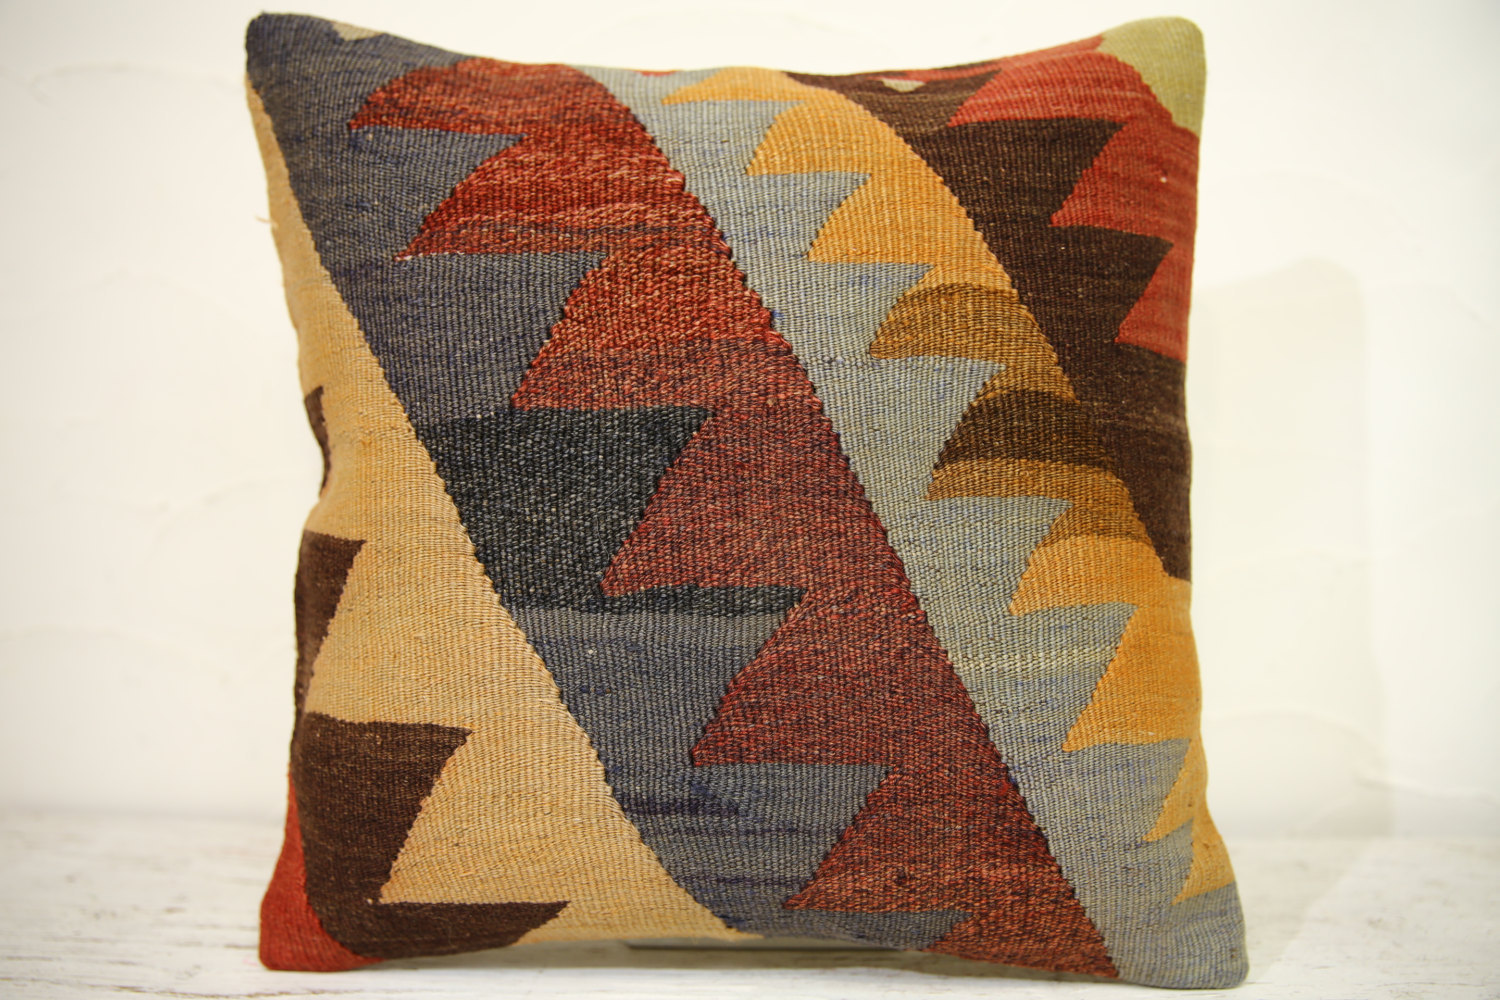 Kilim Pillows | 16x16 | Turkish pillows | 1291 | Accent Pillow,Decorative Pillow